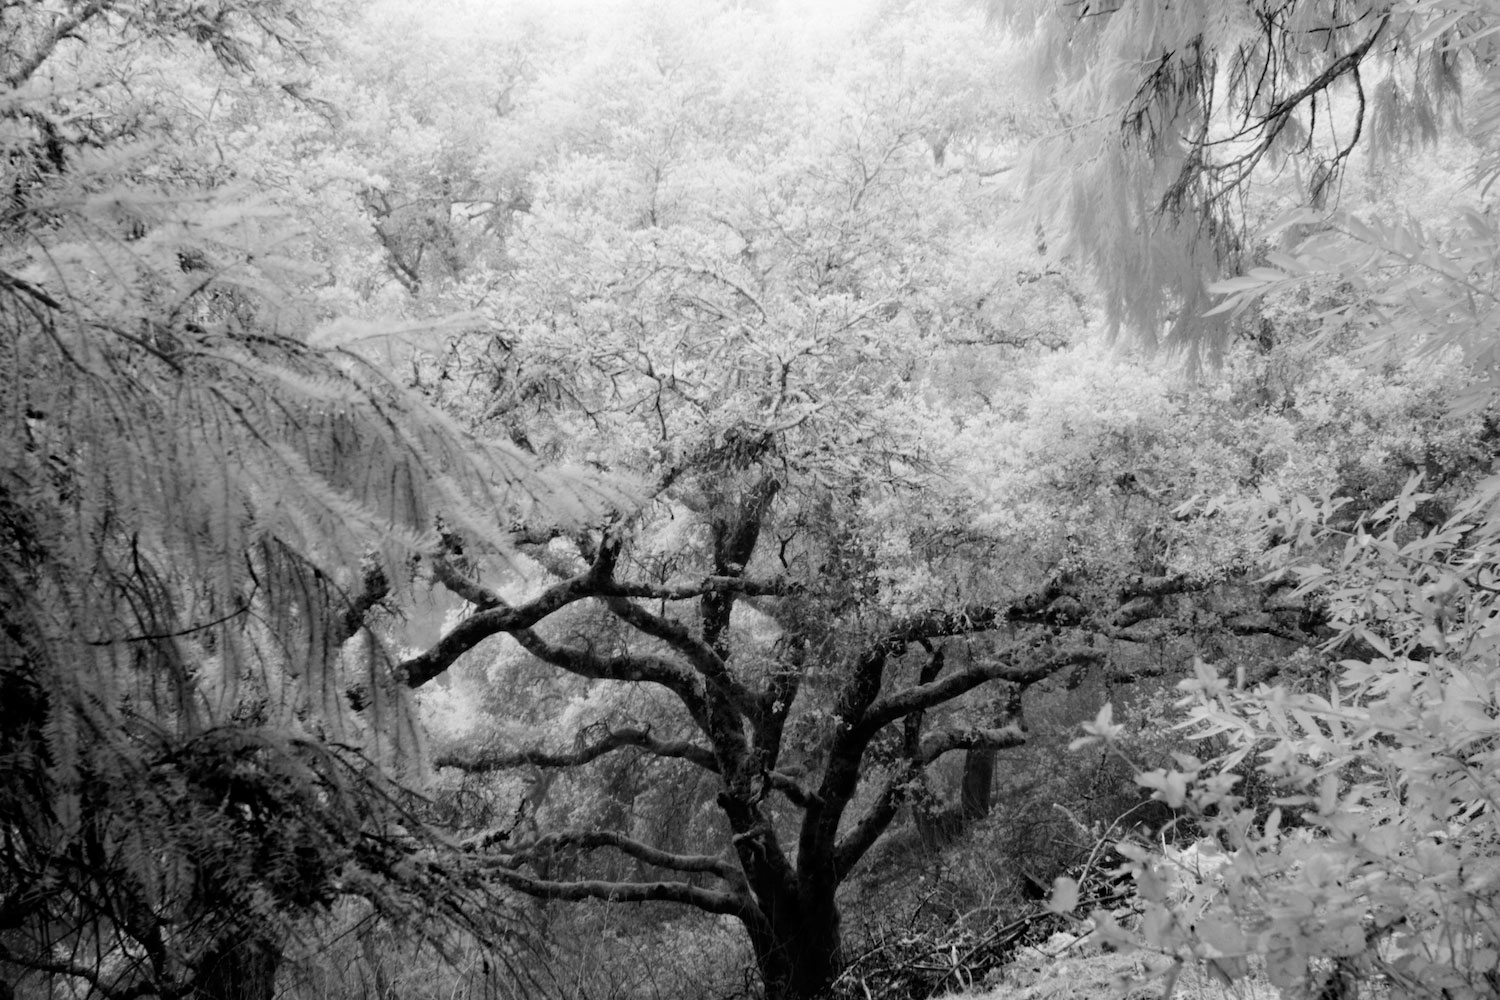 Enter the Infrared Image Gallery